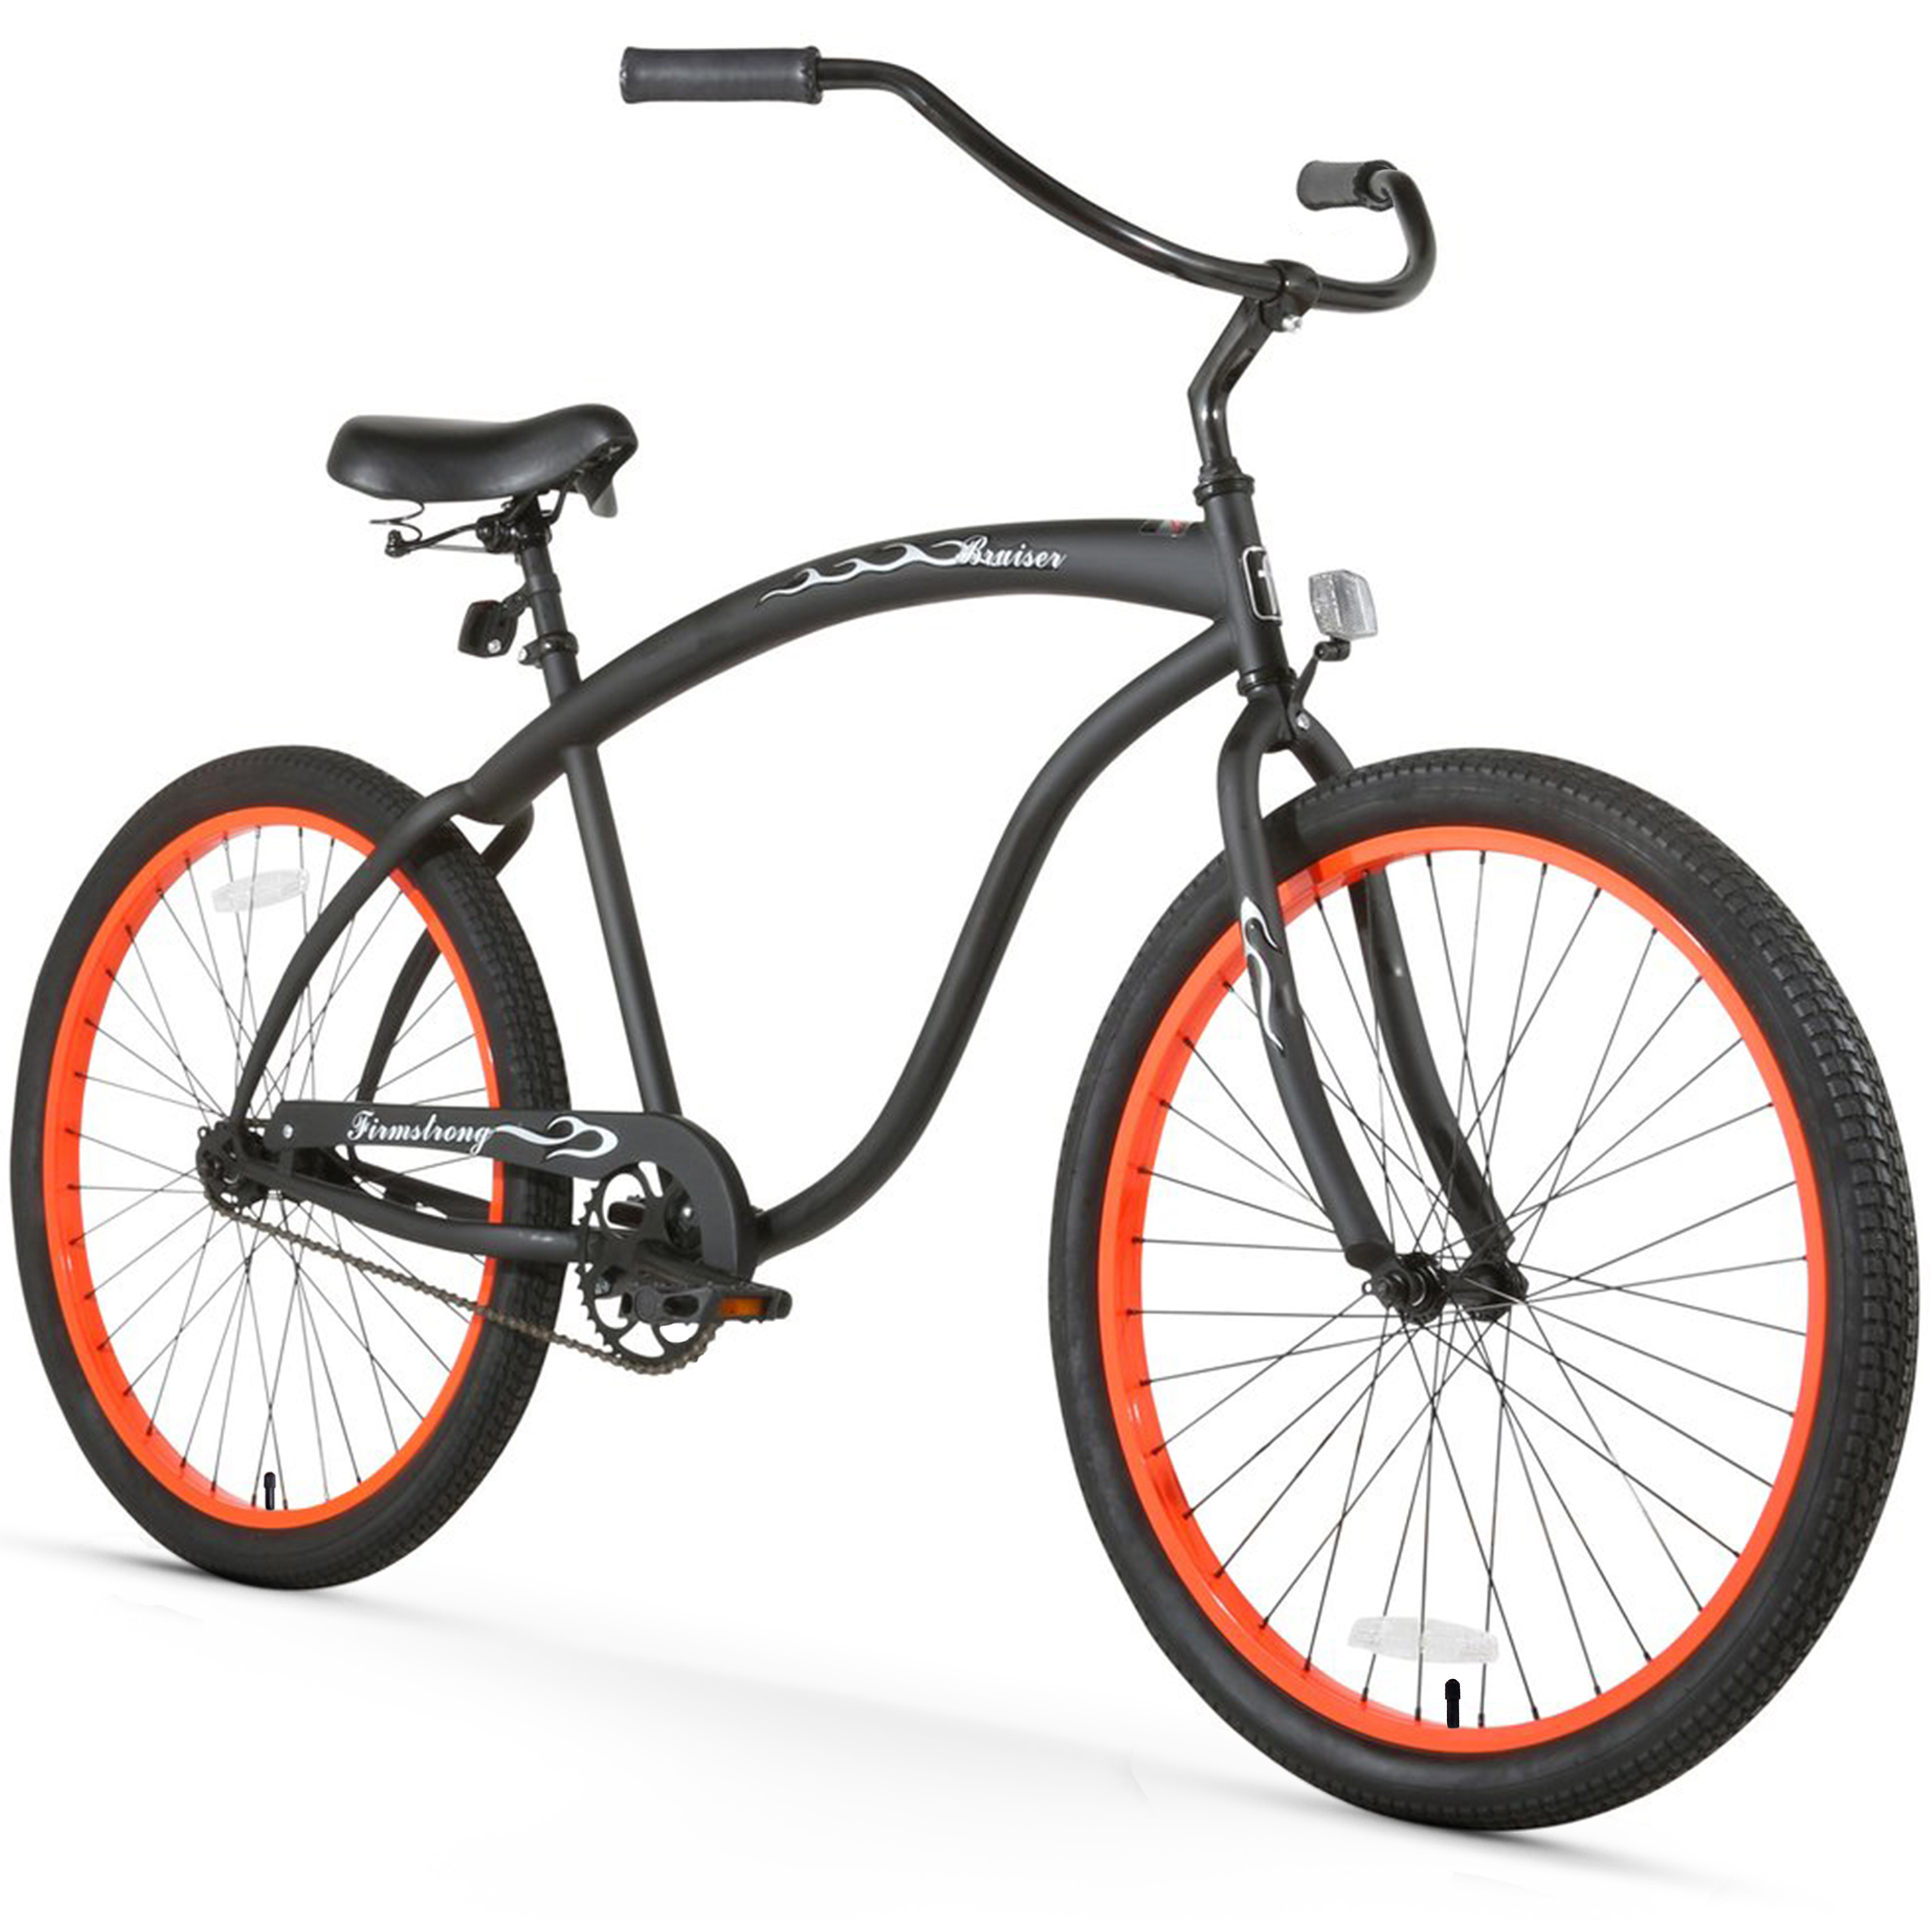 "26"" Firmstrong Bruiser Man Single Speed Beach Cruiser Men's Bicycle, Matte Black with Orange Rims"